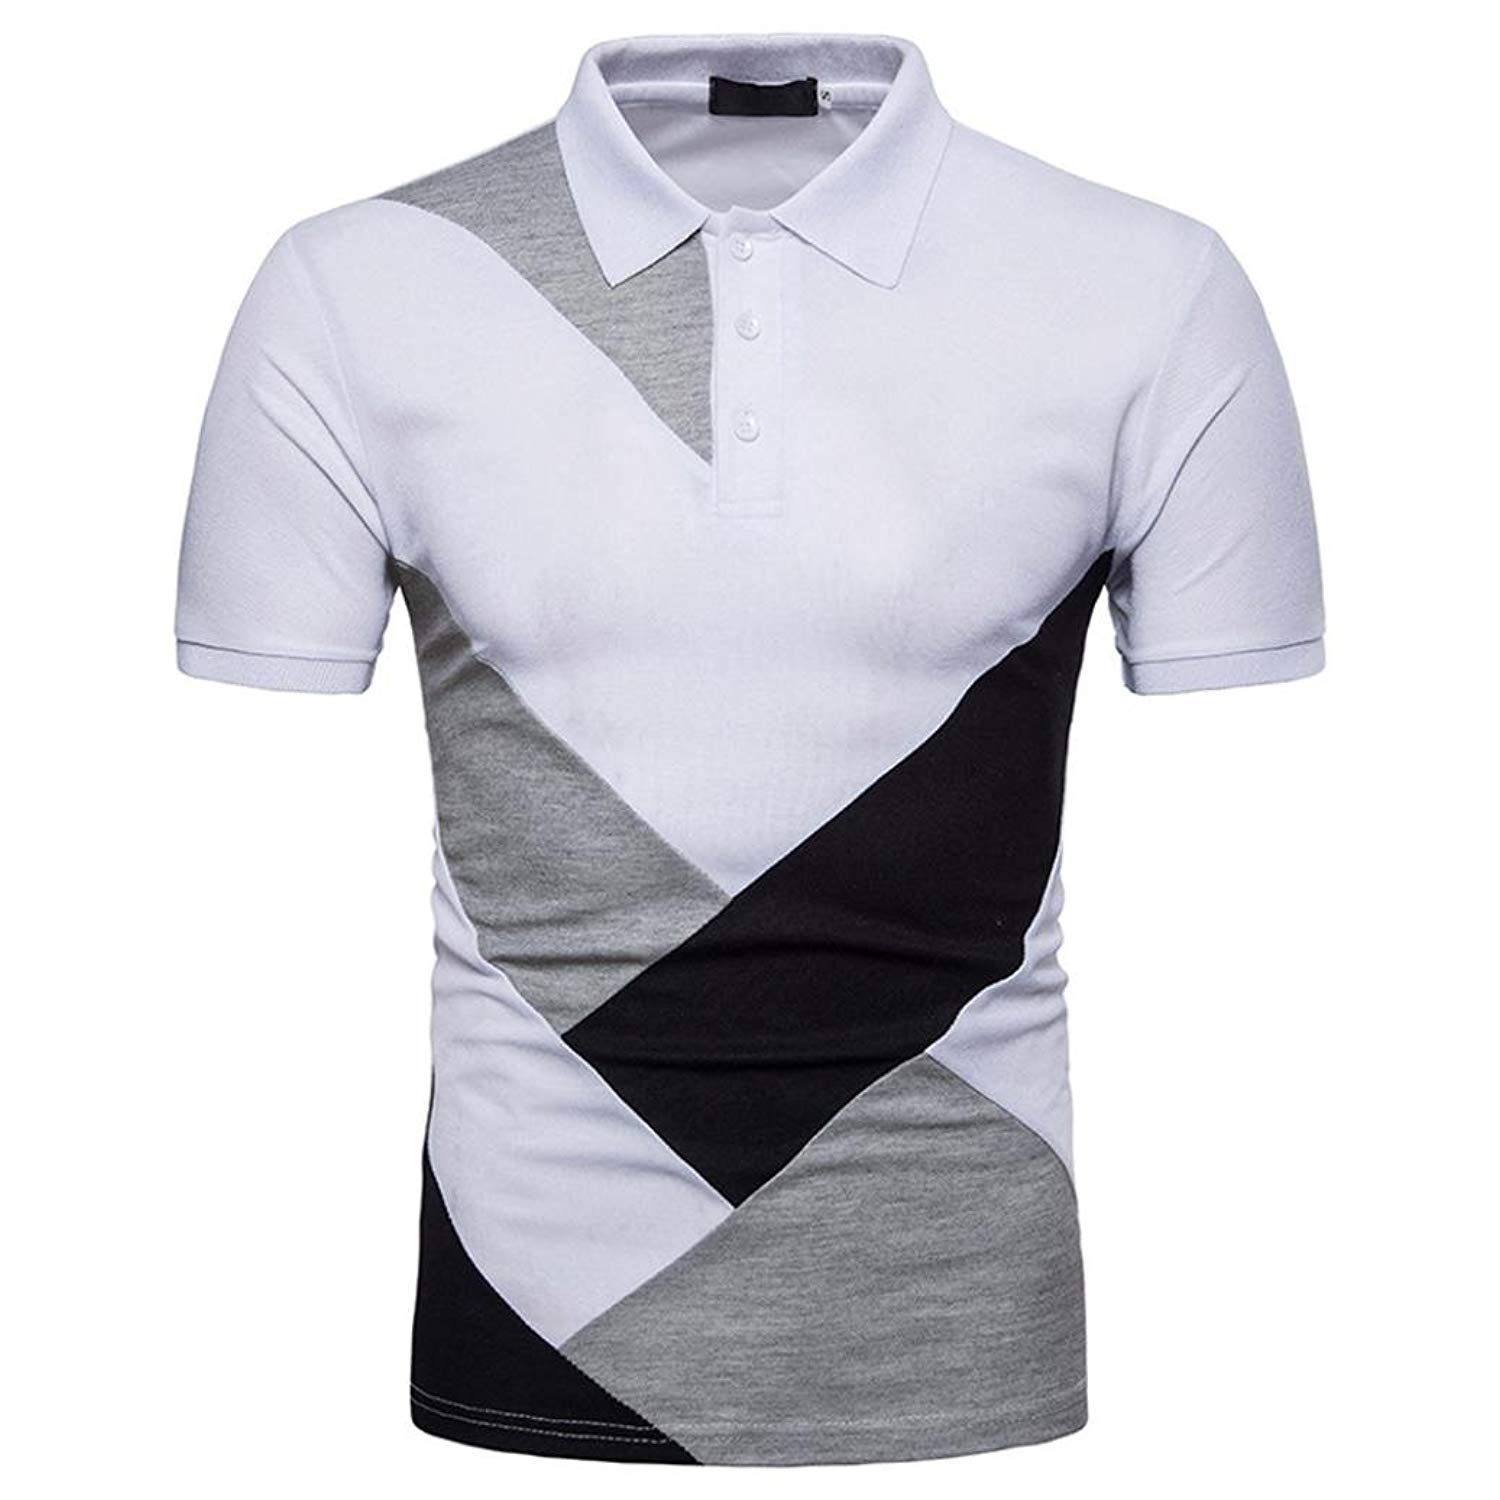 ace3865797f Get Quotations · Sagton Mens Polo Shirts Clearance